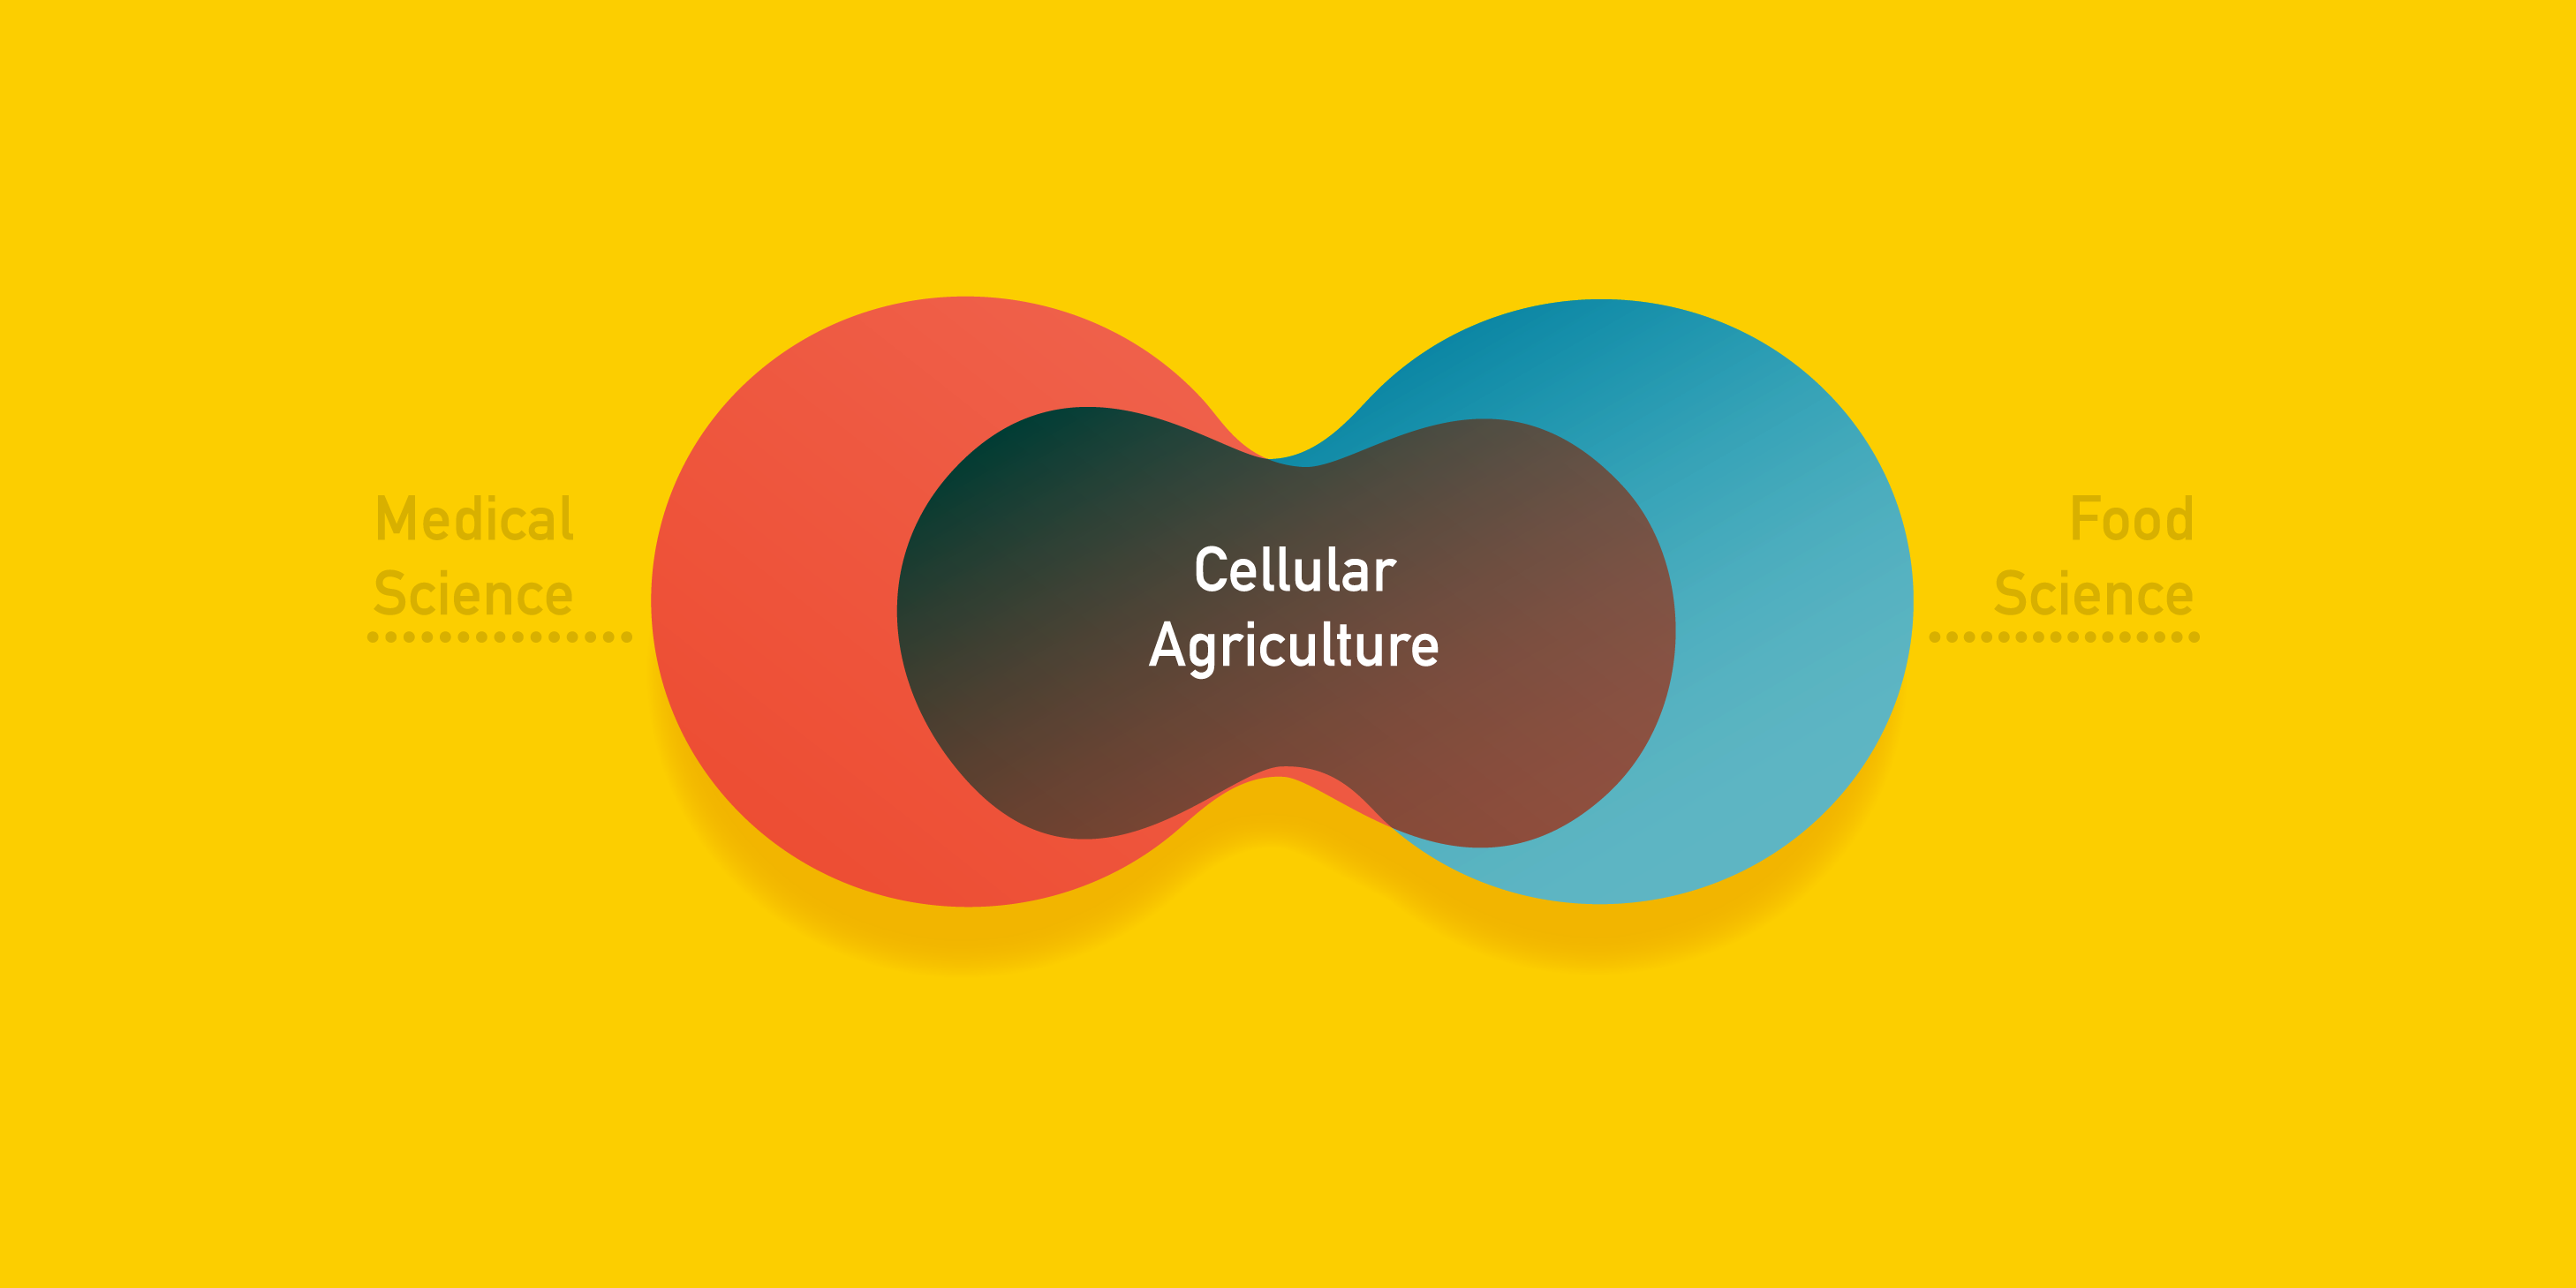 cellular agriculture at connection between circles of medical science and food science